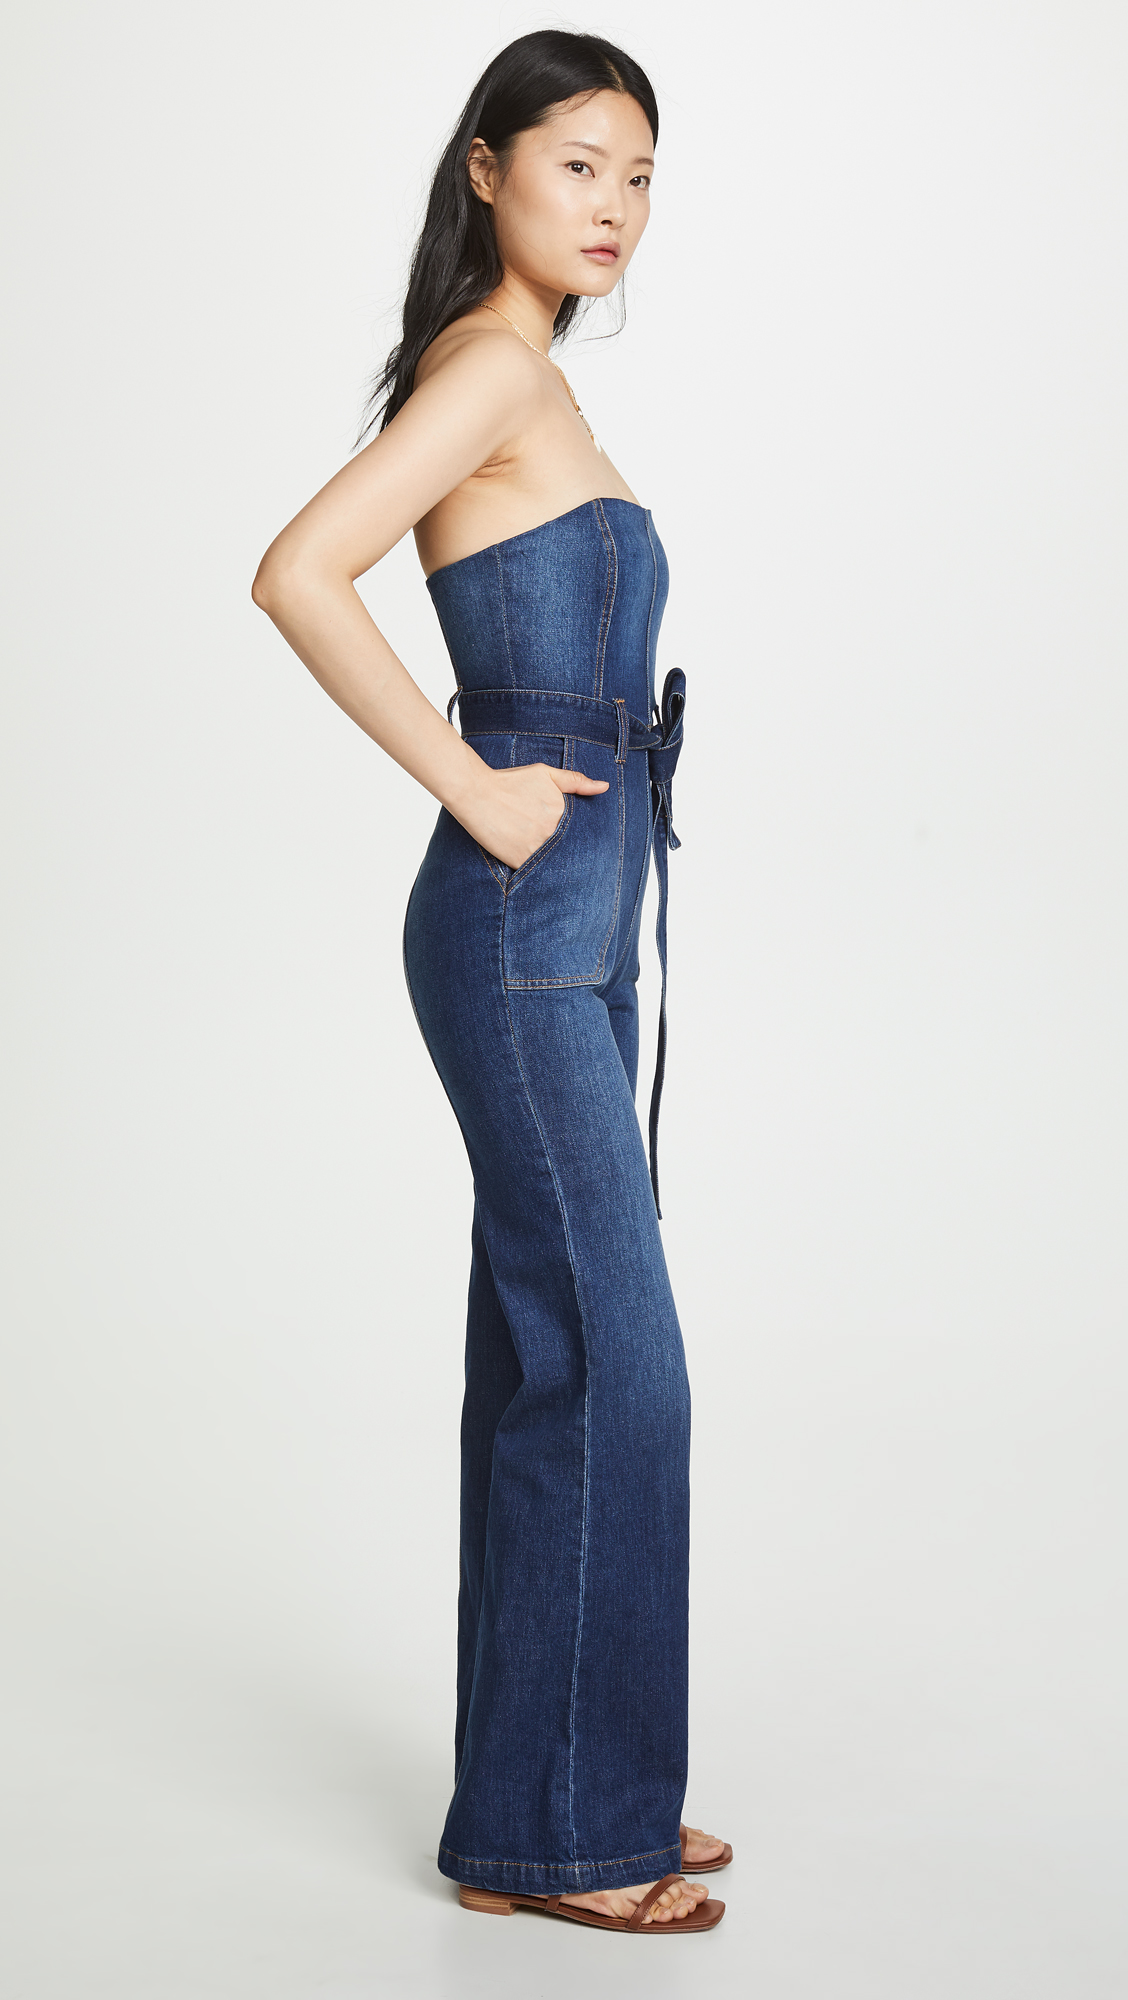 46c0e5f2c5f ALICE + OLIVIA JEANS Gorgeous Susy Jumpsuit